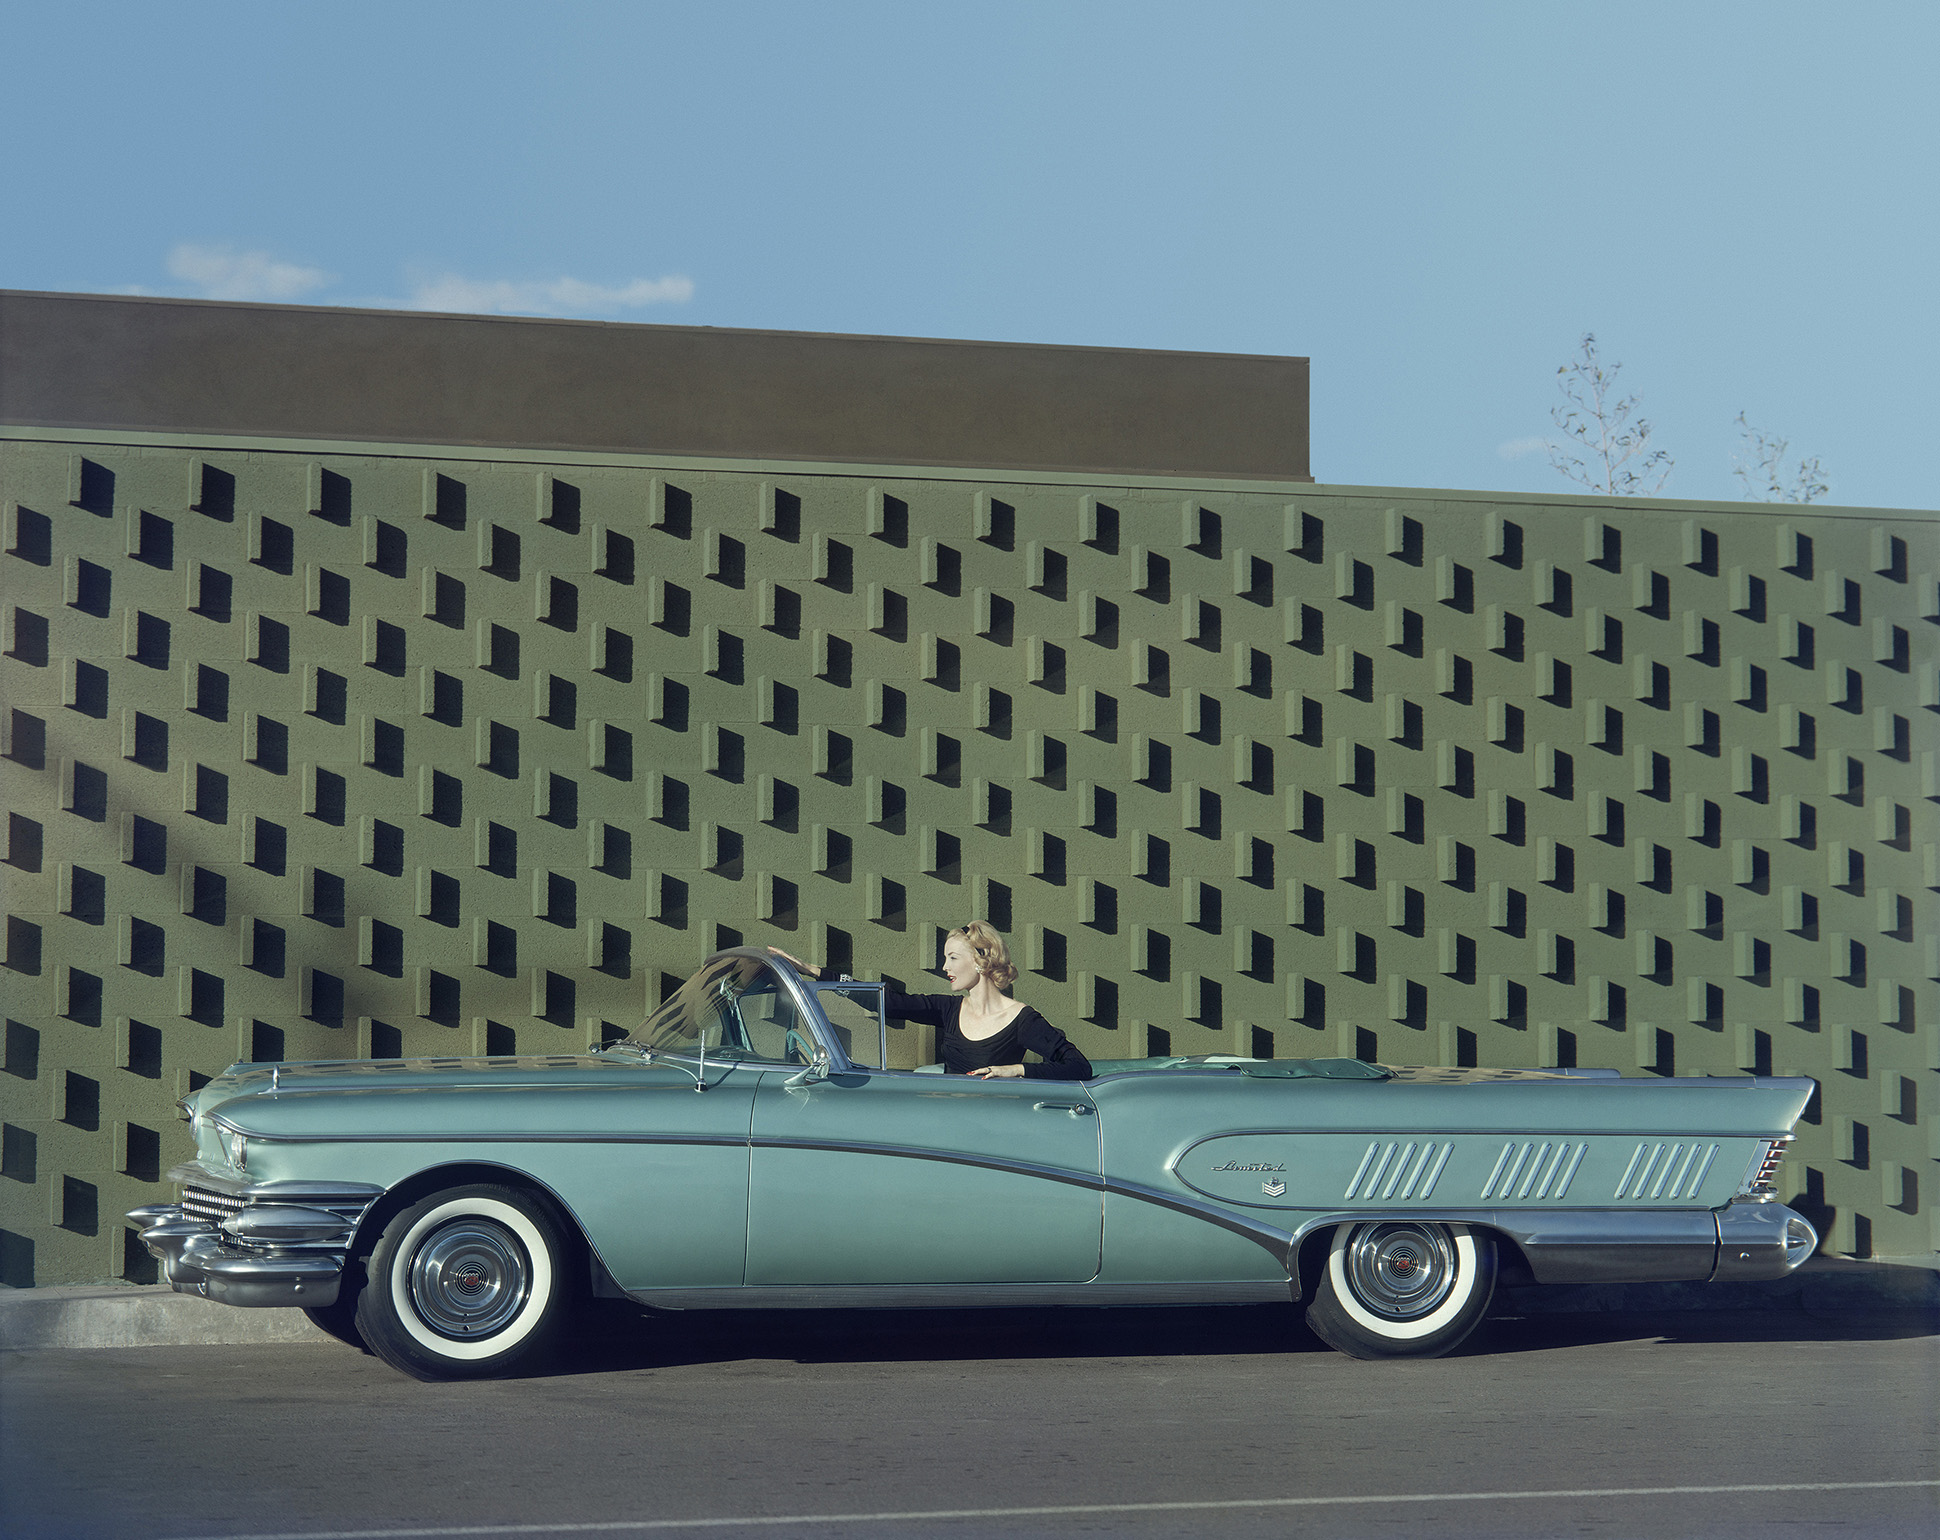 Fondation Cartier Gets Into Gear With Car Photography Show